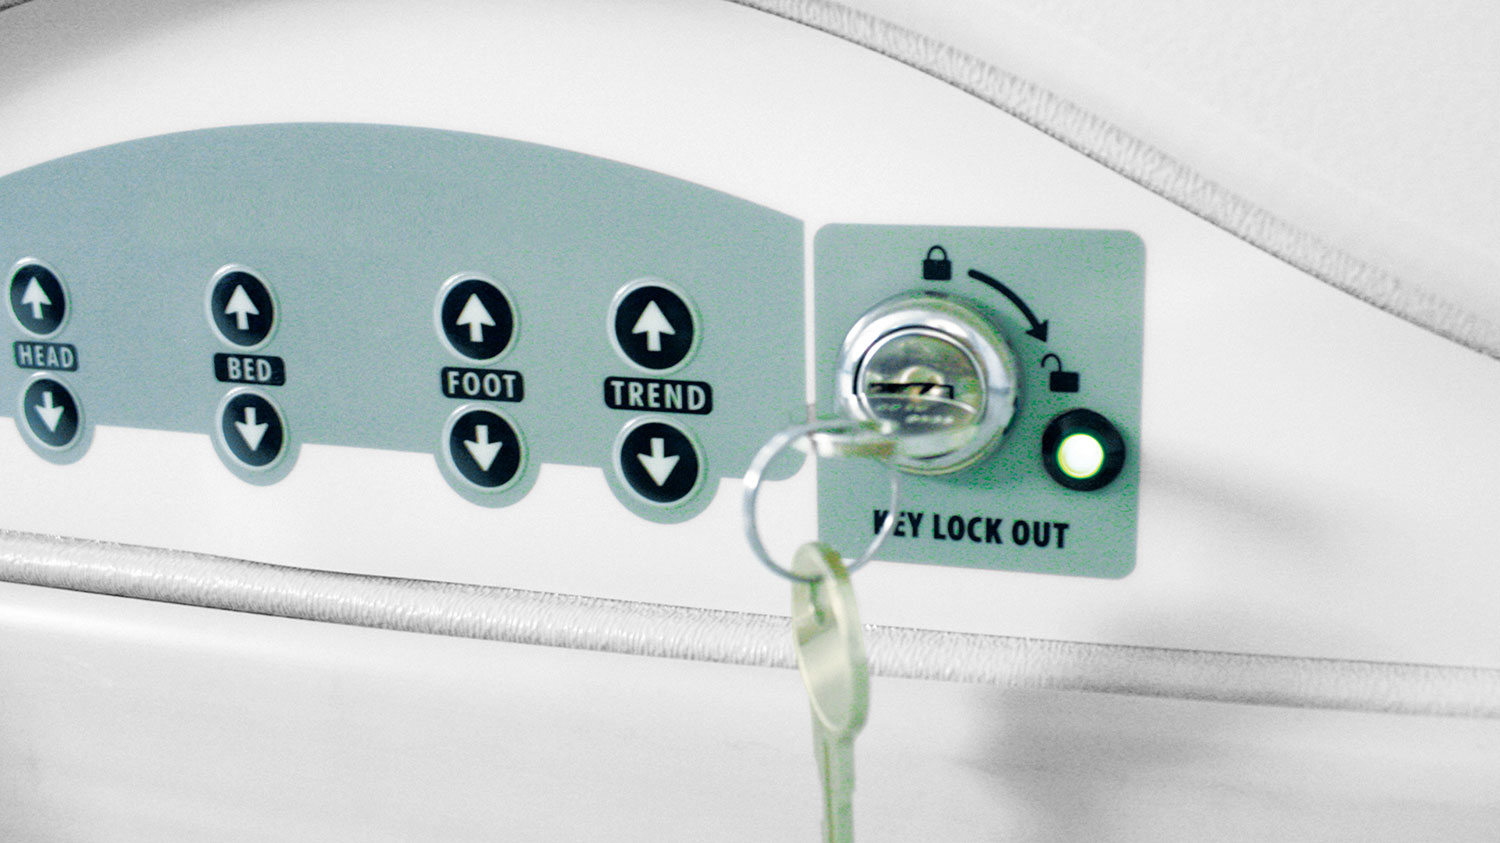 Footboard lockout controls